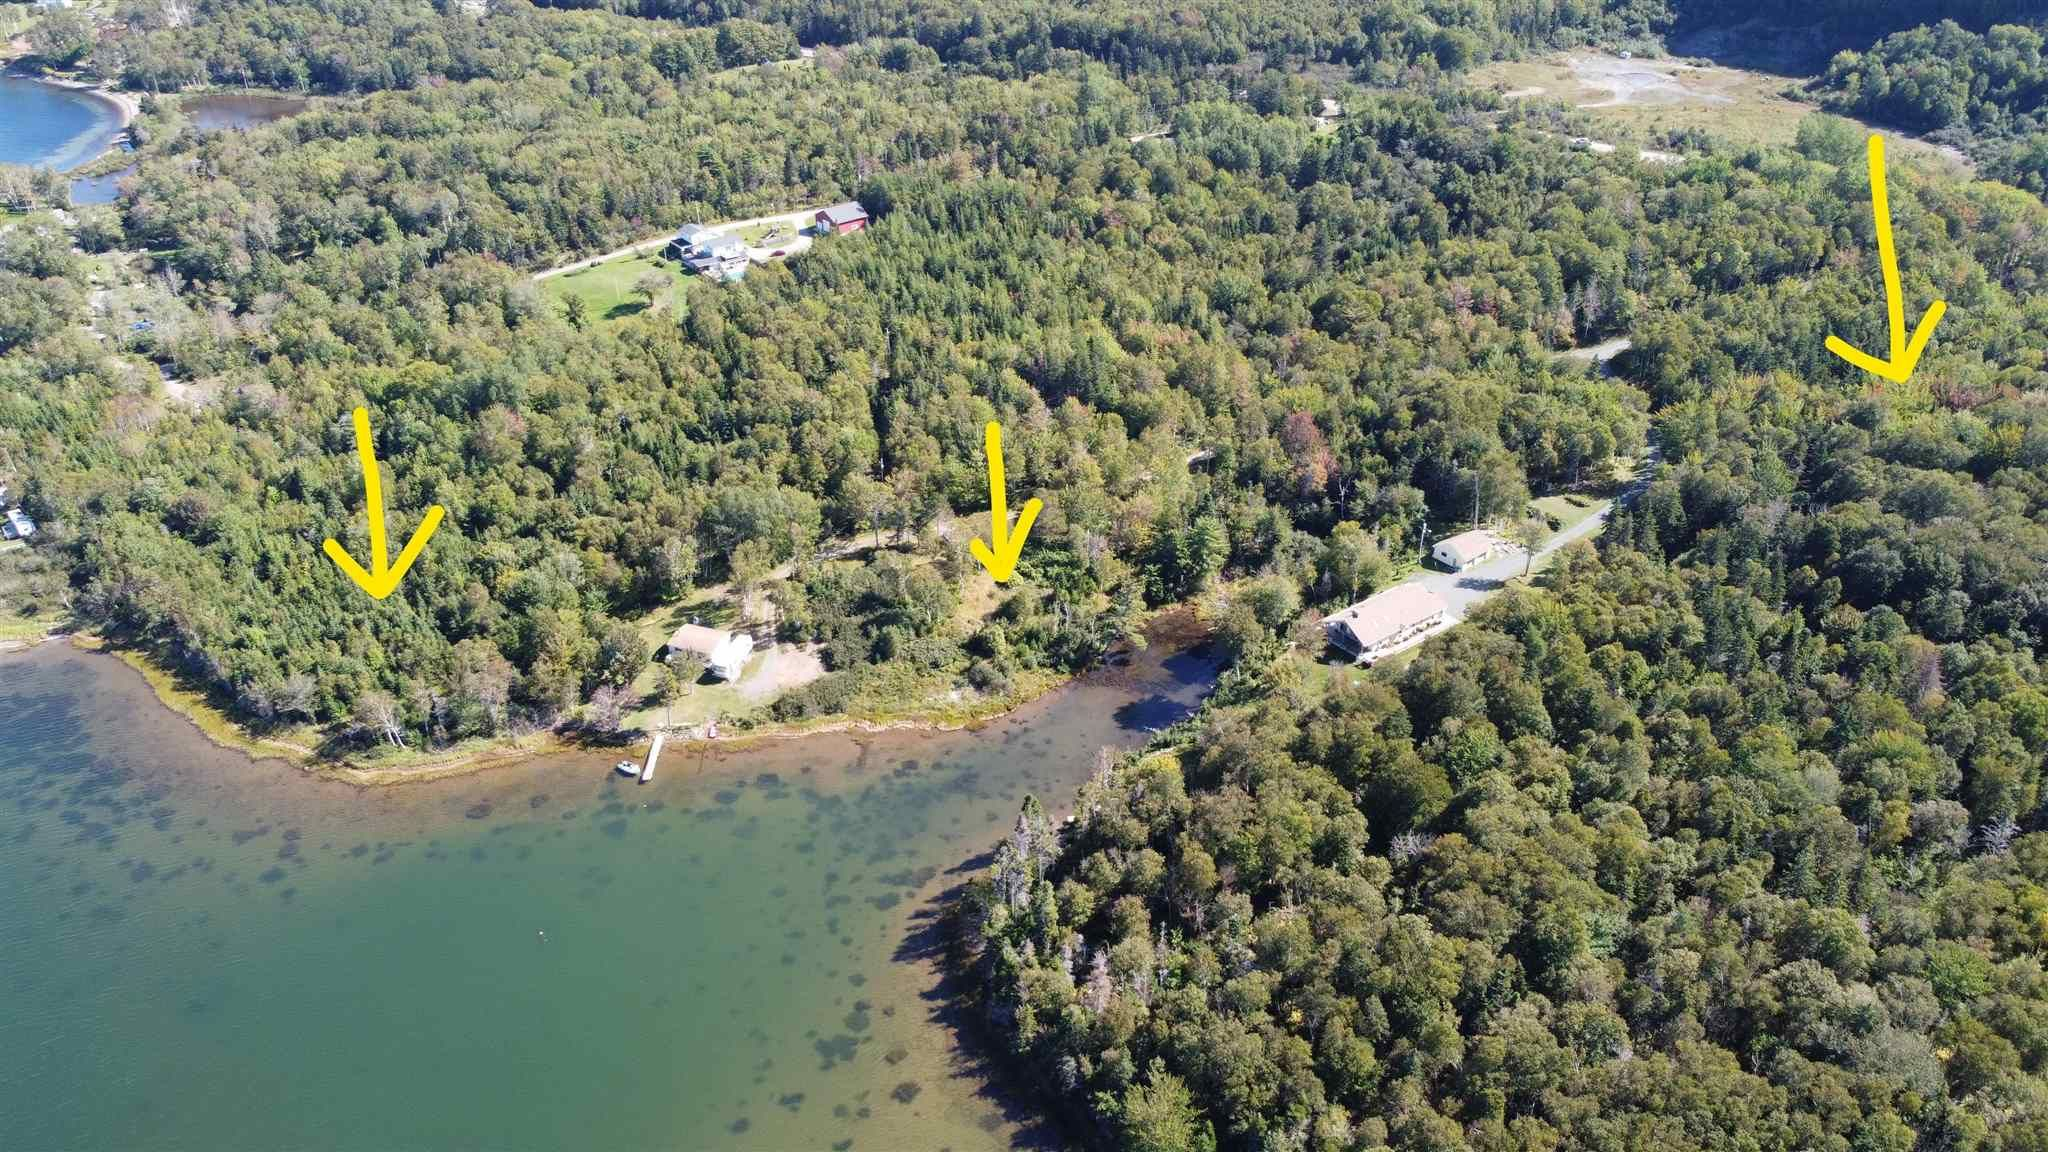 Main Photo: Lot 1&2 East Bay Highway in Big Pond: 207-C. B. County Vacant Land for sale (Cape Breton)  : MLS®# 202108705